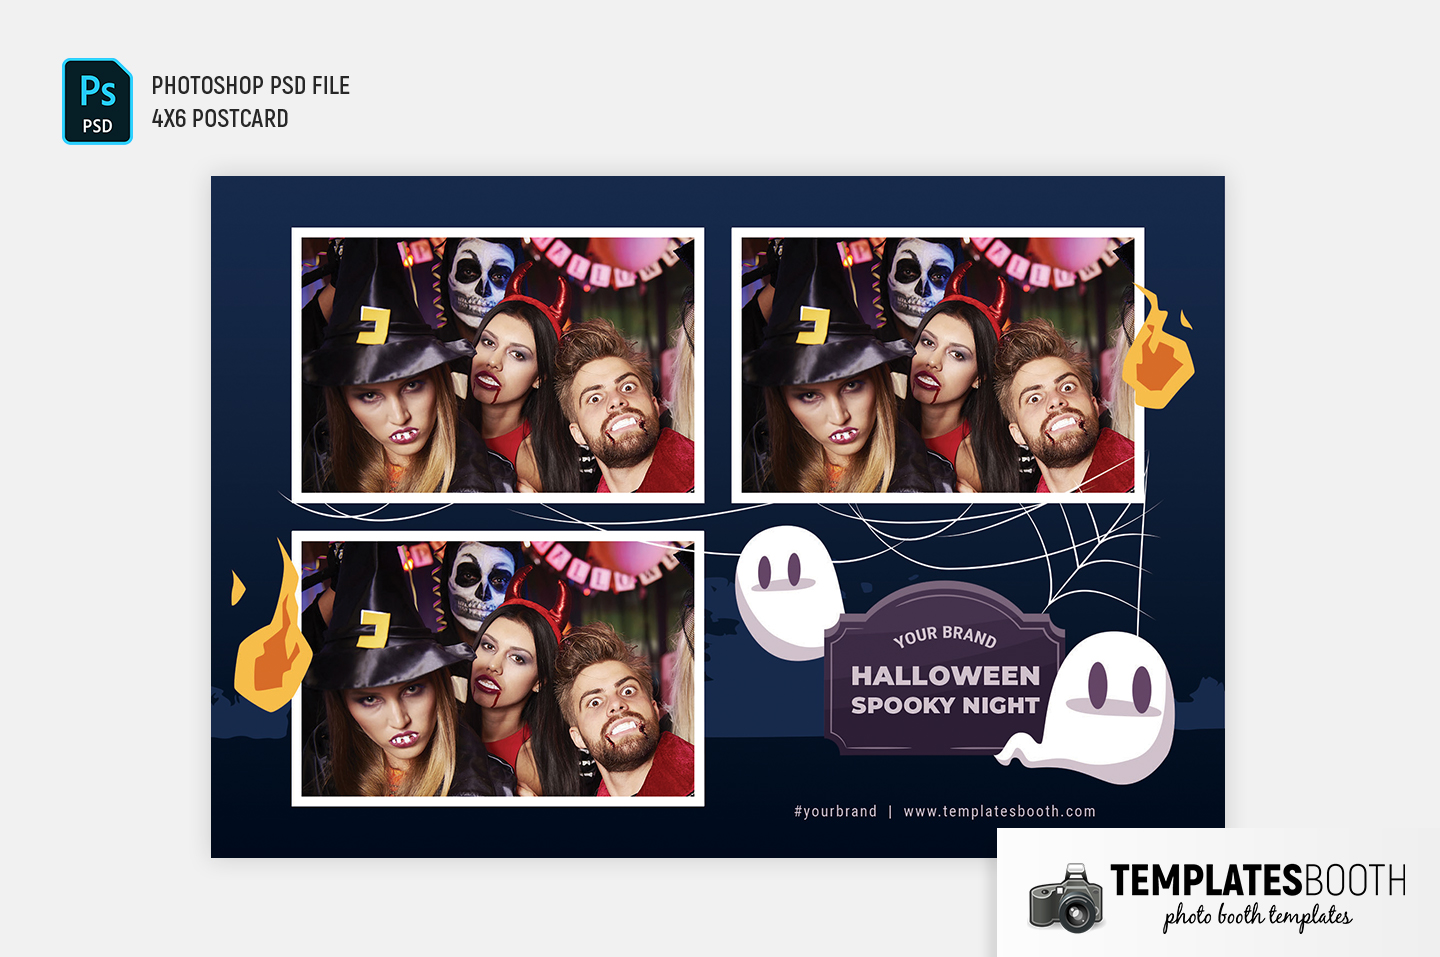 Halloween Spooky Night Photo Booth Template (4x6 landscape)